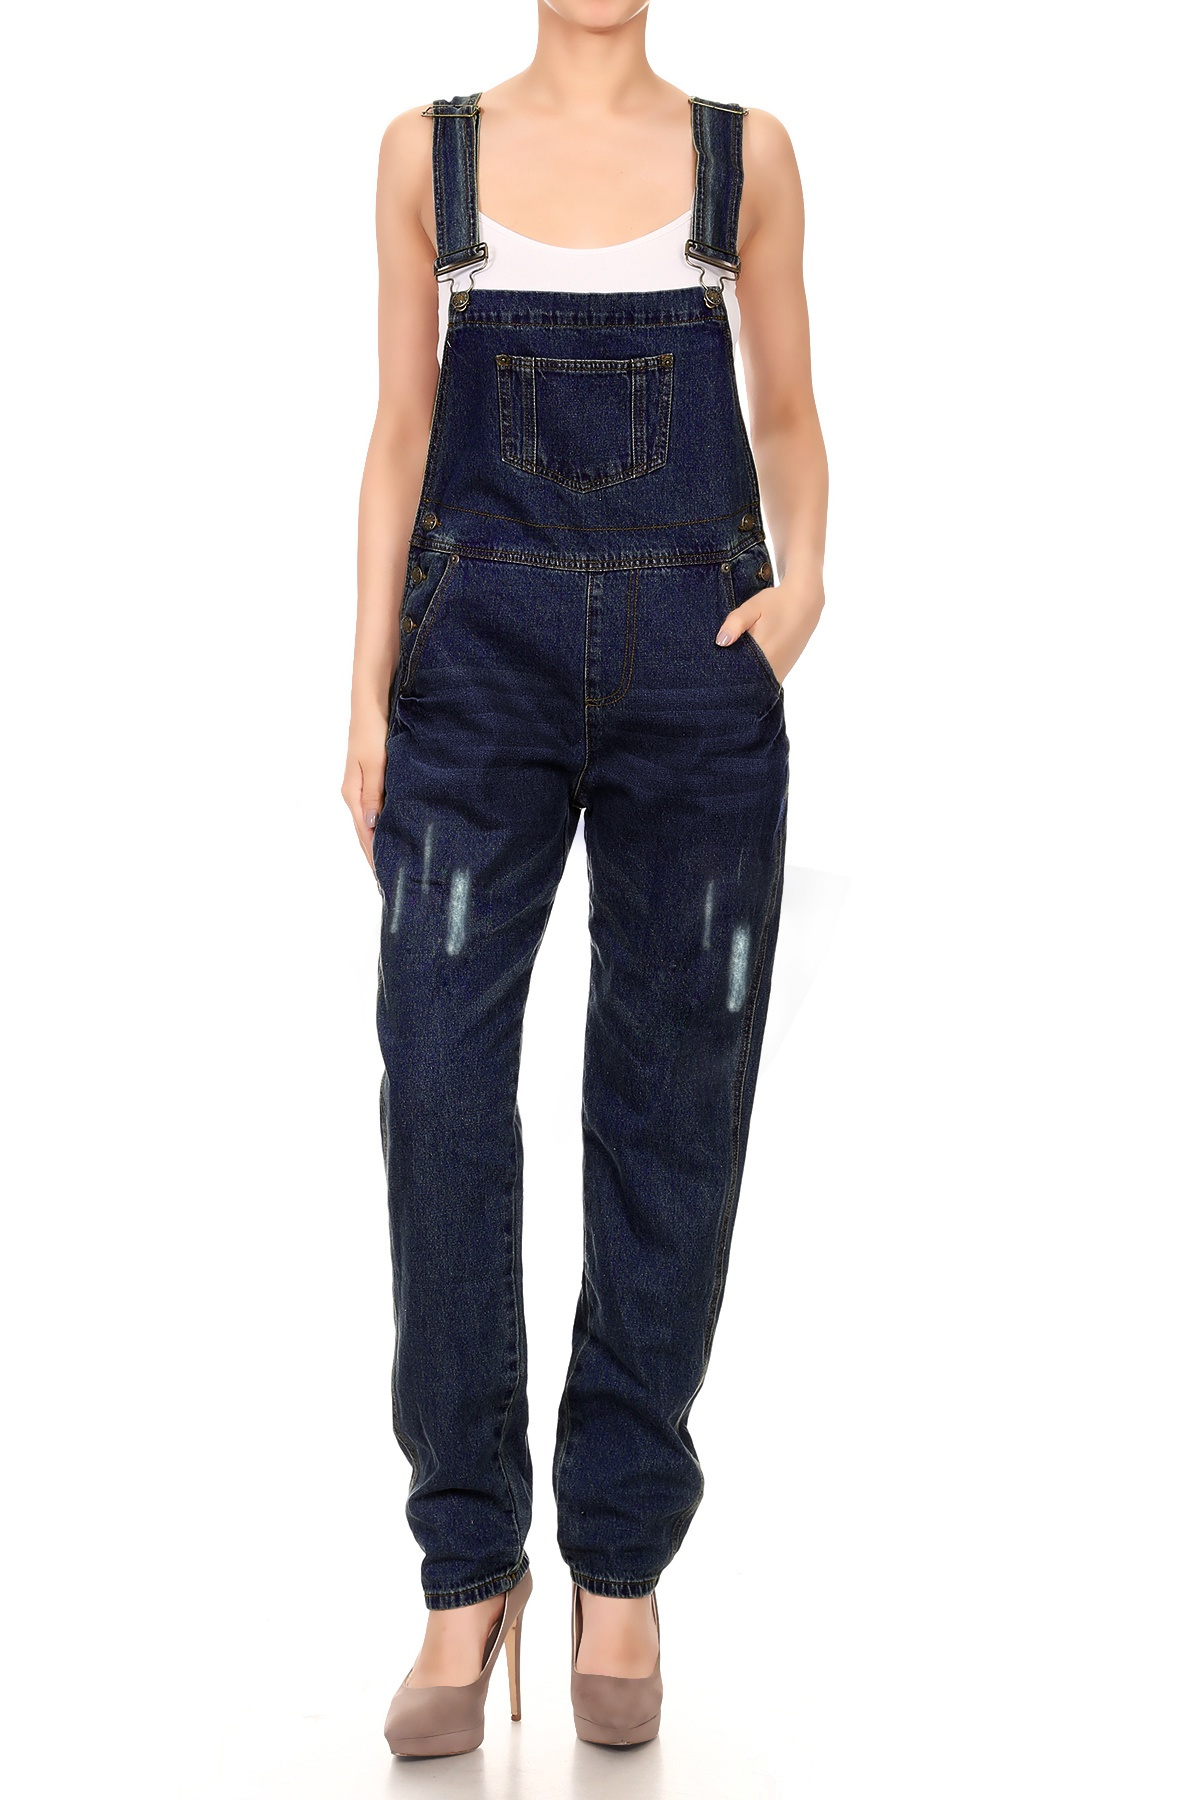 Women's Denim Straight Leg Jeans Available in Regular, Petite, and Tall Lengths Distressed Raw Scratch Style Tapered Leg Overalls